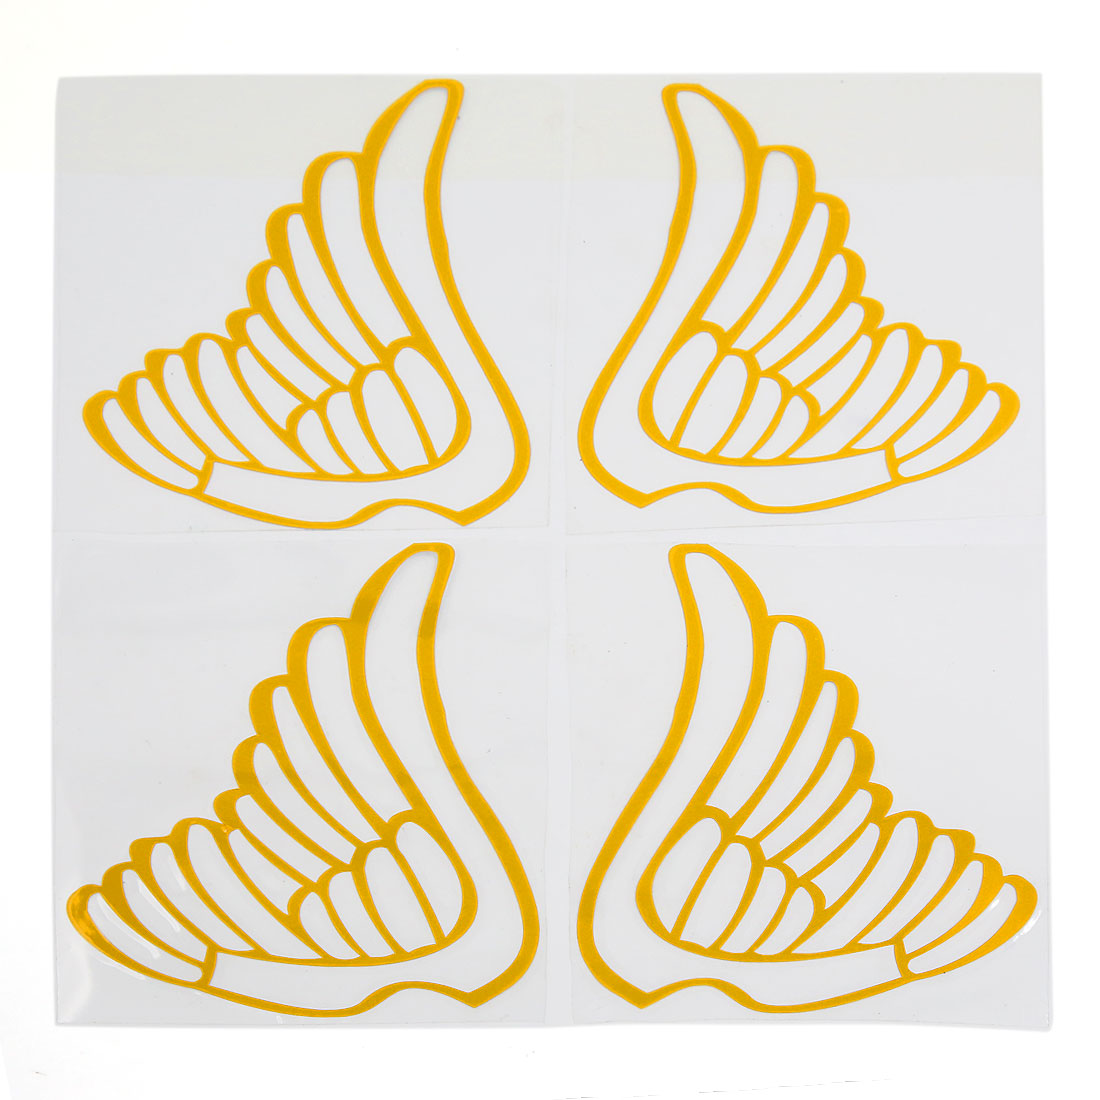 Car Rear View Mirrors Adhesive DIY Stickers Wing Pattern Decal Adron Yellow 4pcs